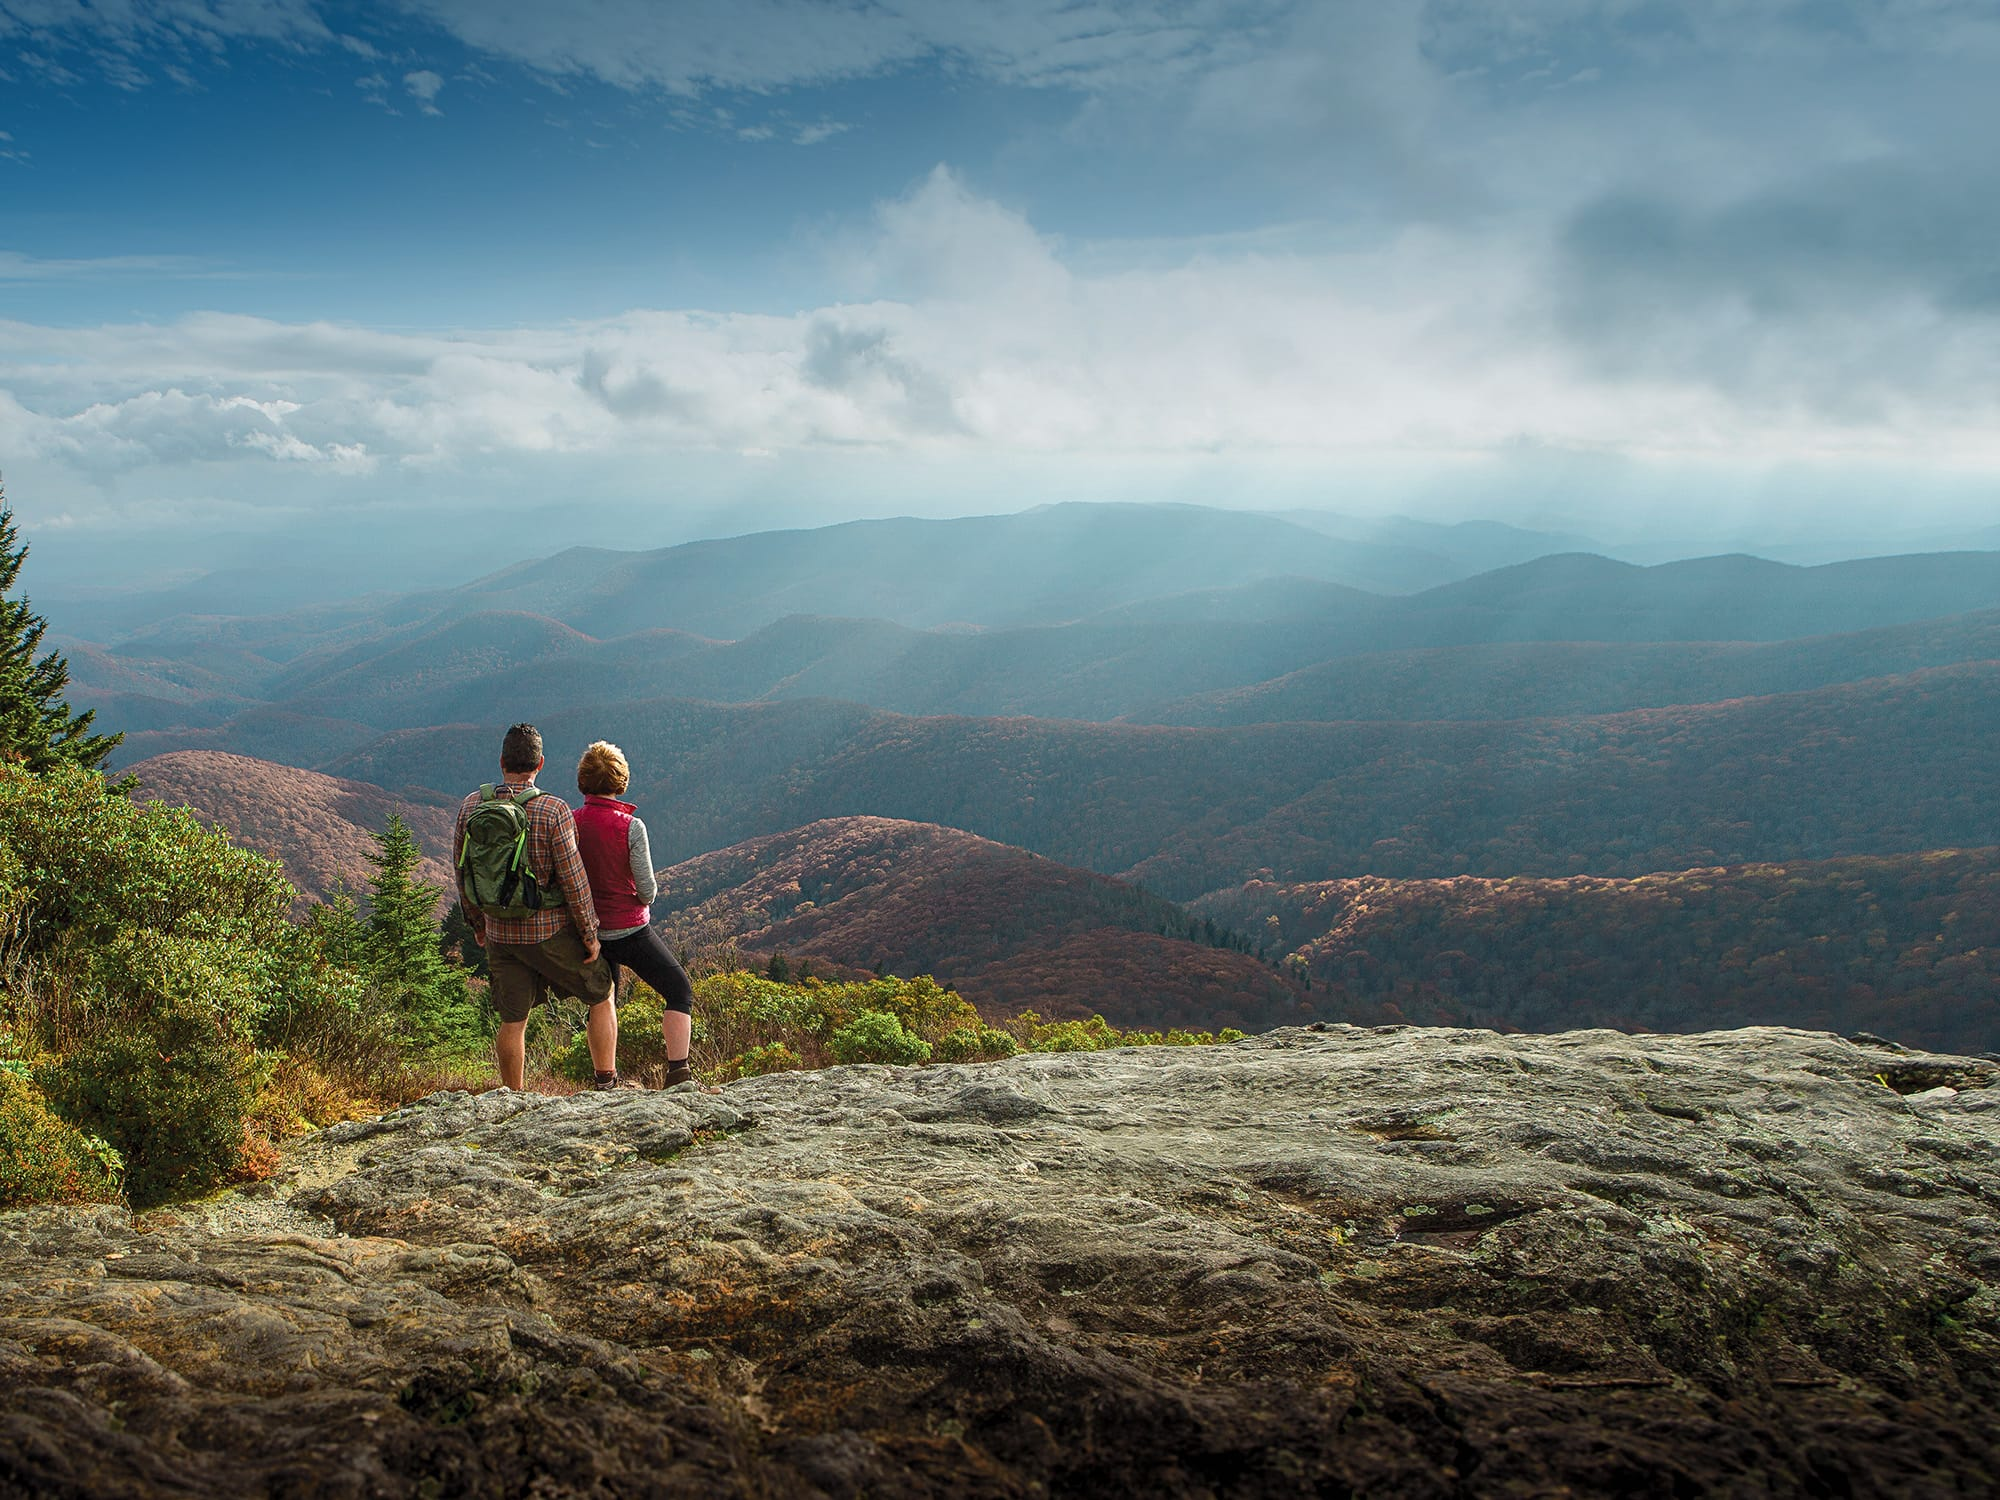 Couple taking in the mountain view after a hike